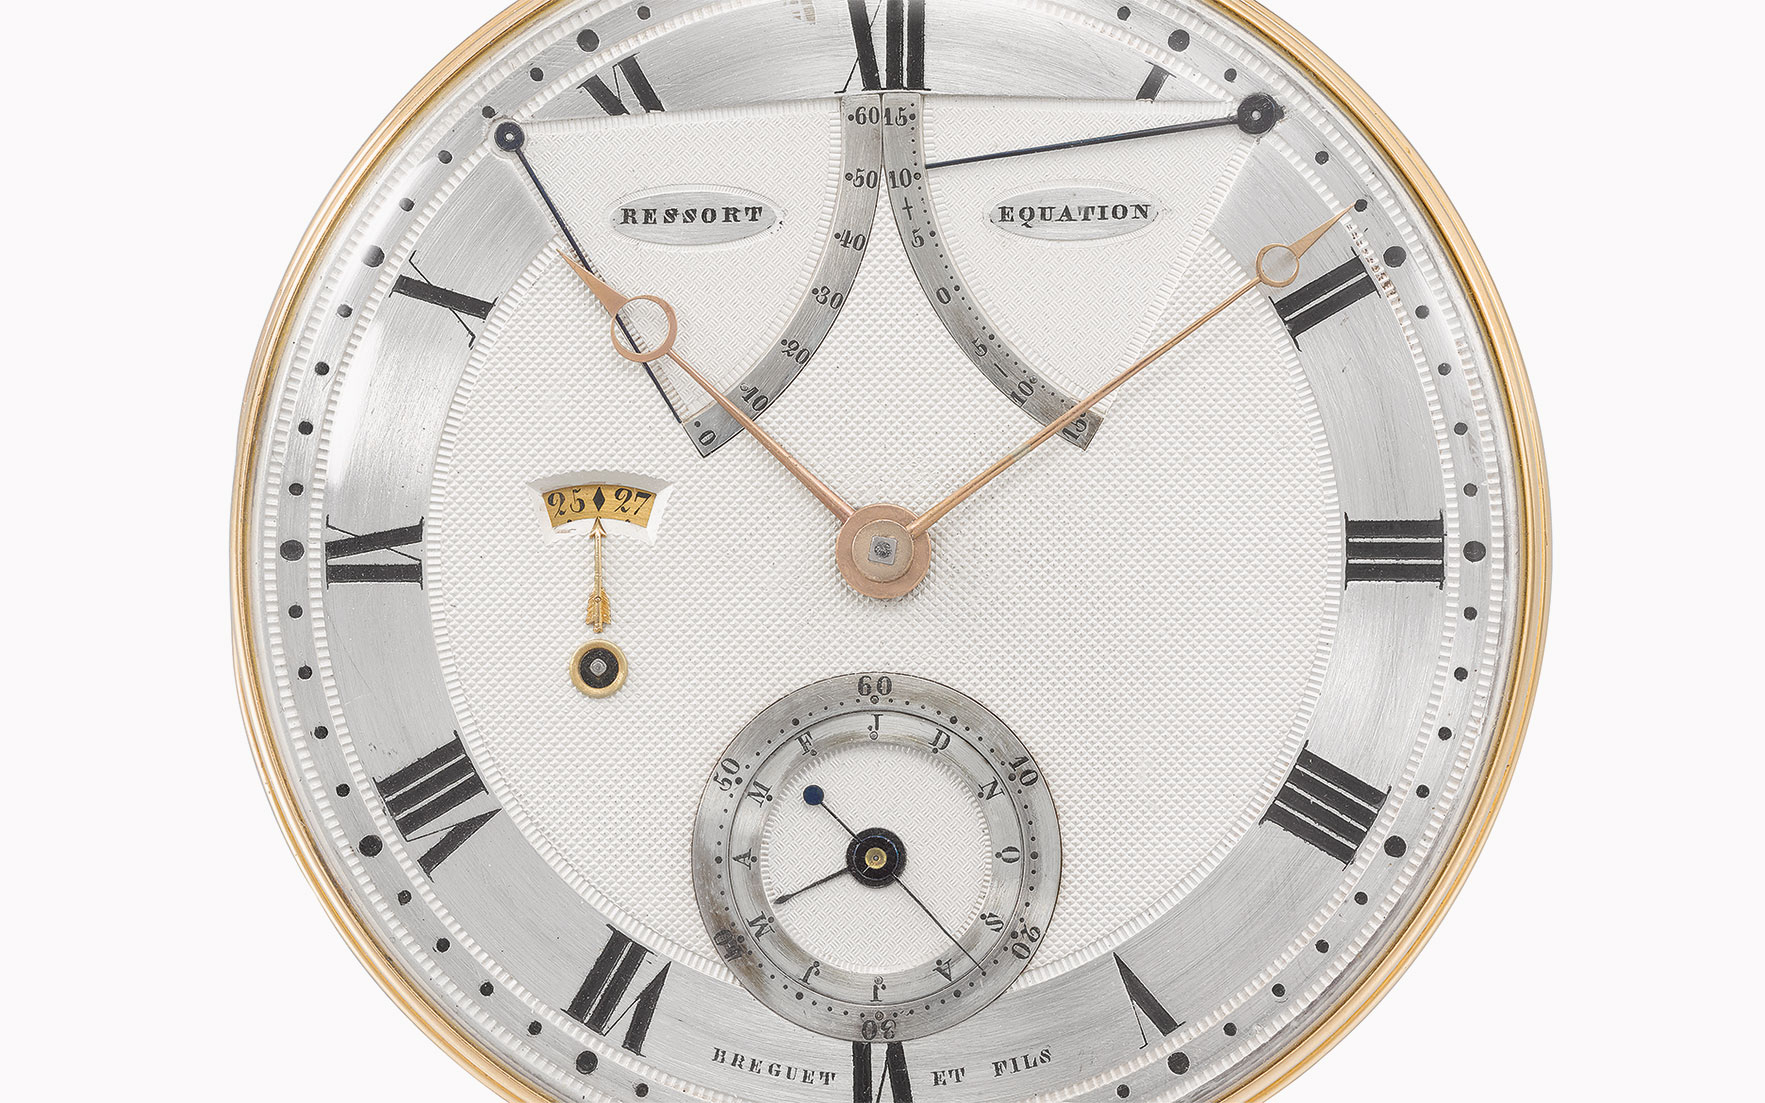 Watch No. 217: A Breguet maste